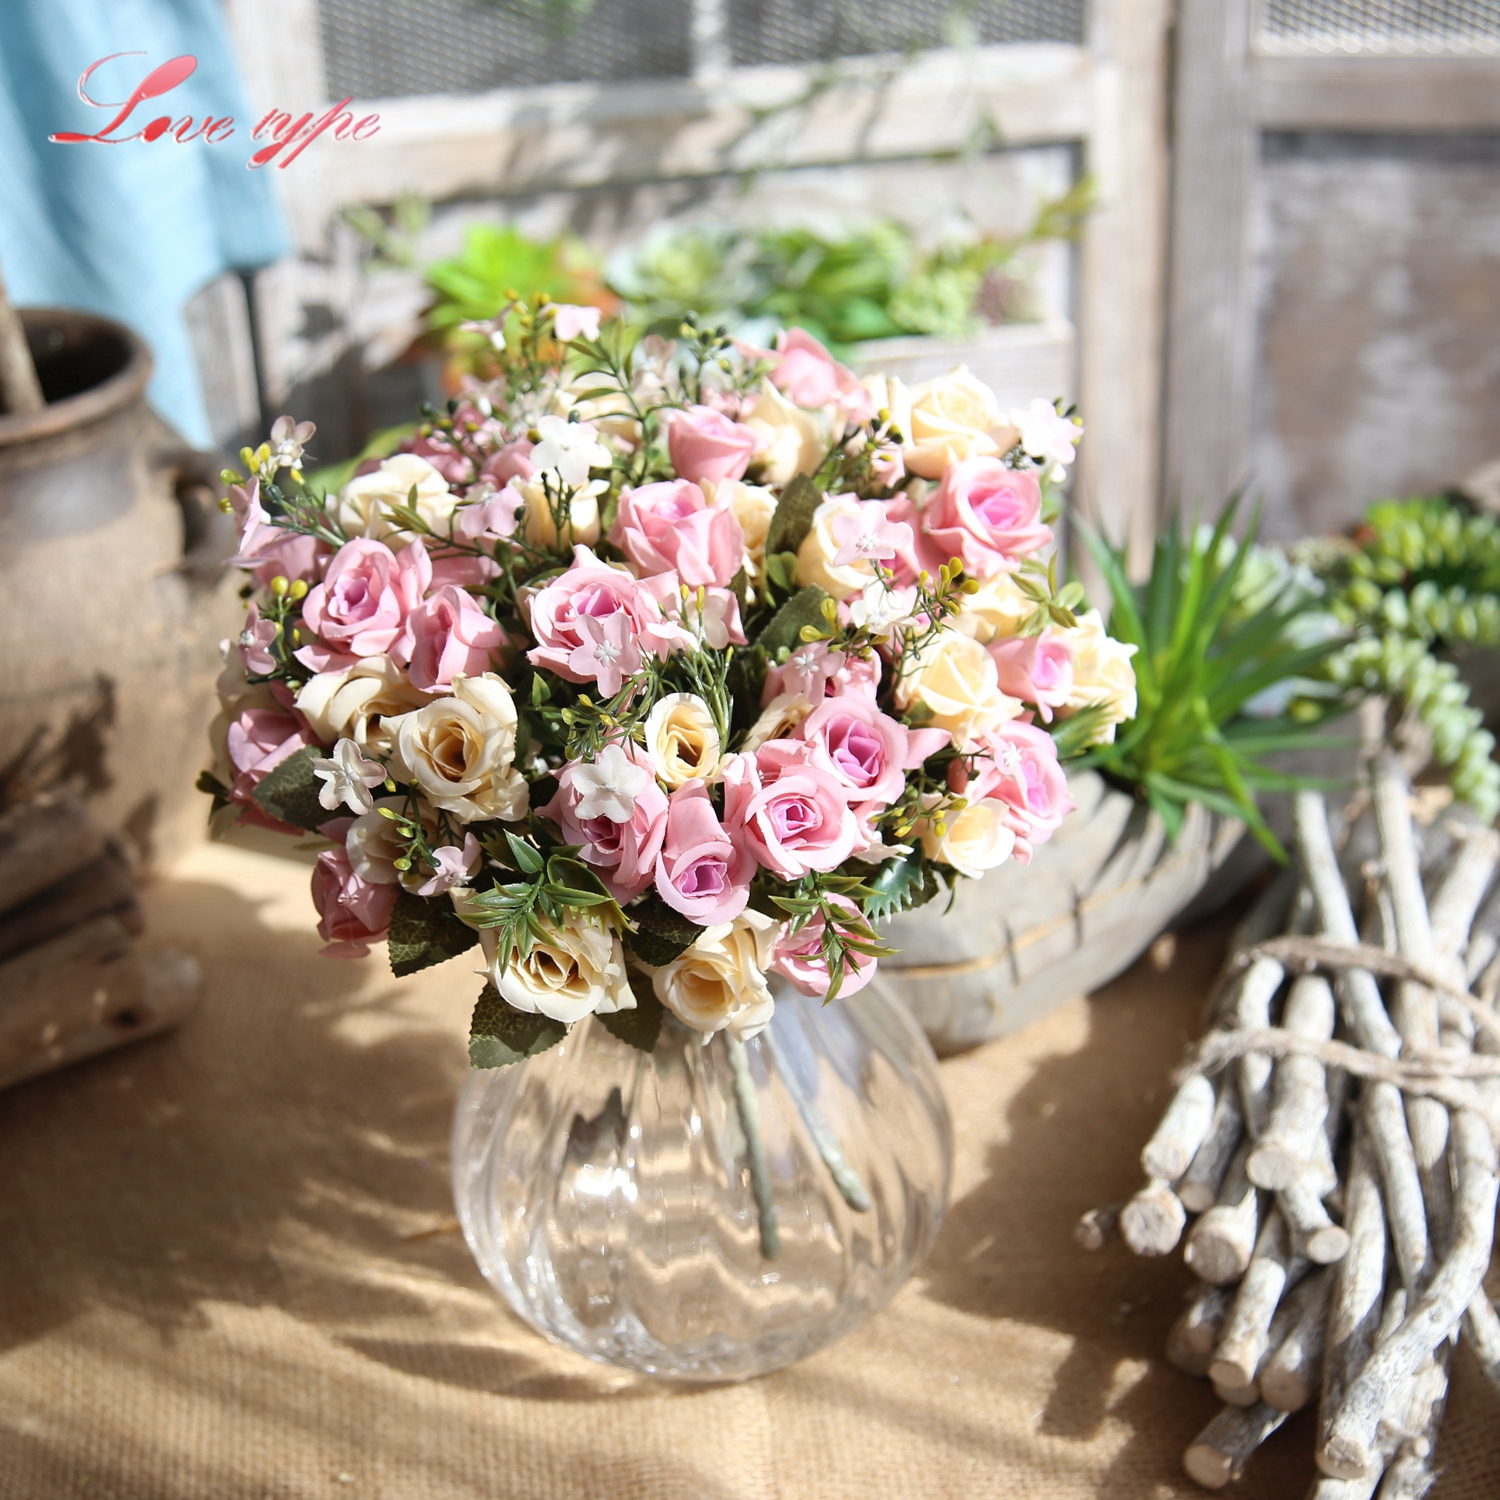 Handmade Wedding Flowers: Aliexpress.com : Buy 1 Bouquet Rose Flowers Leaves